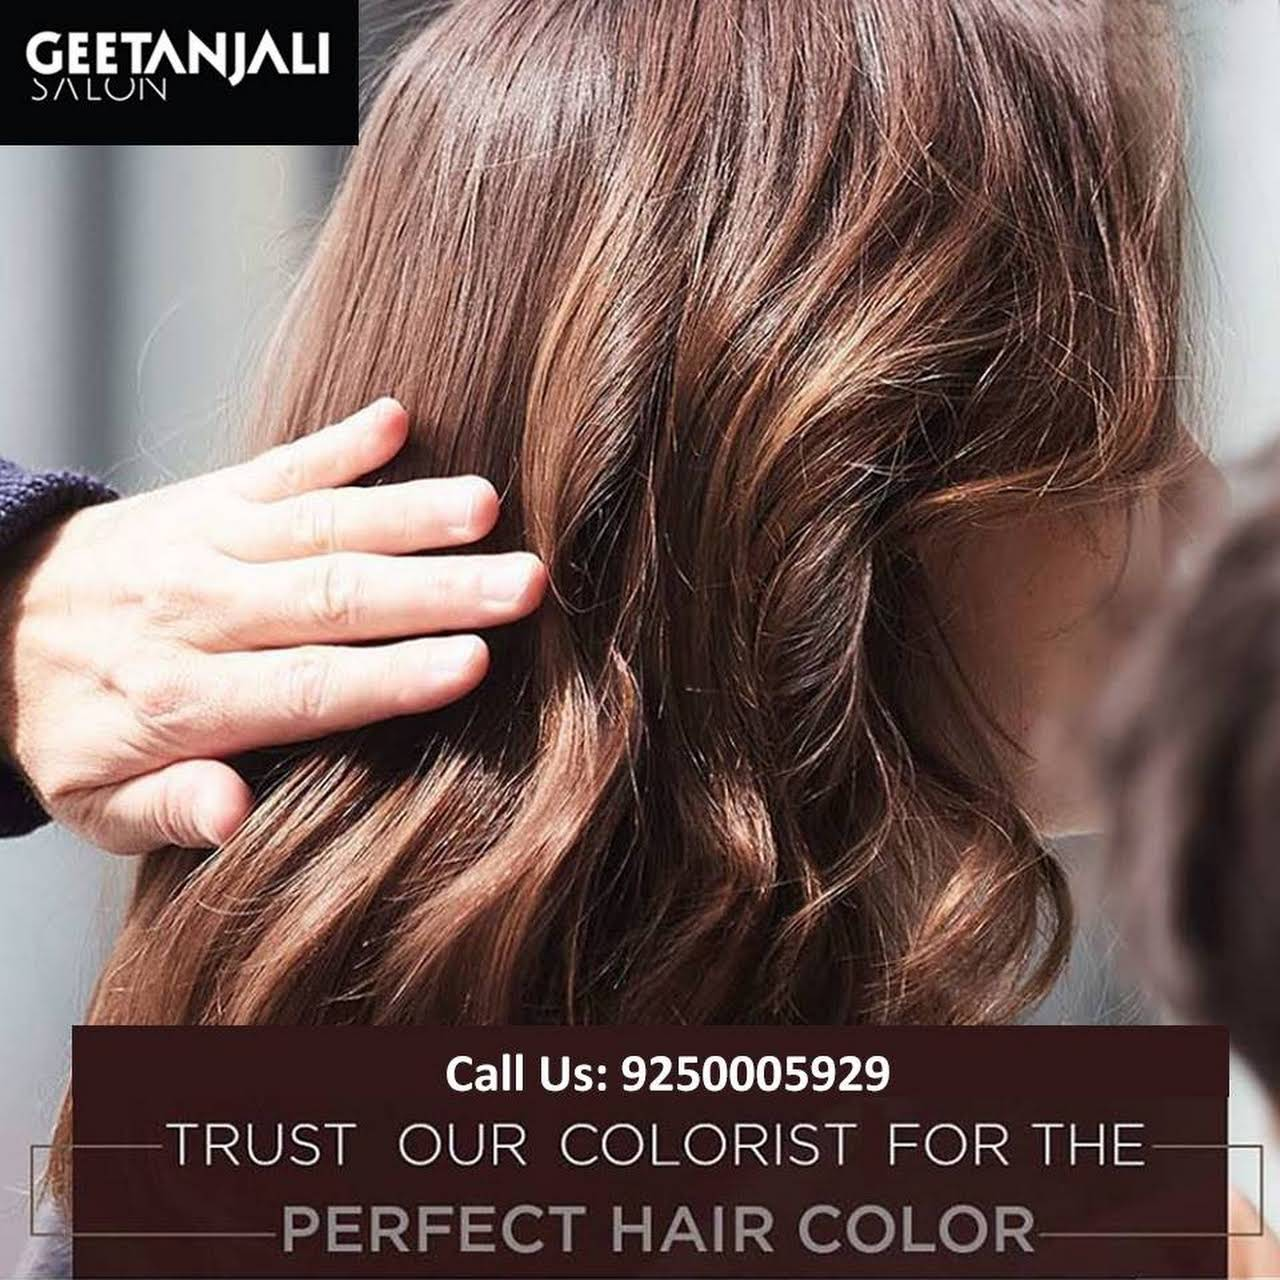 Geetanjali Salon V12S Mall - Salon in Delhi